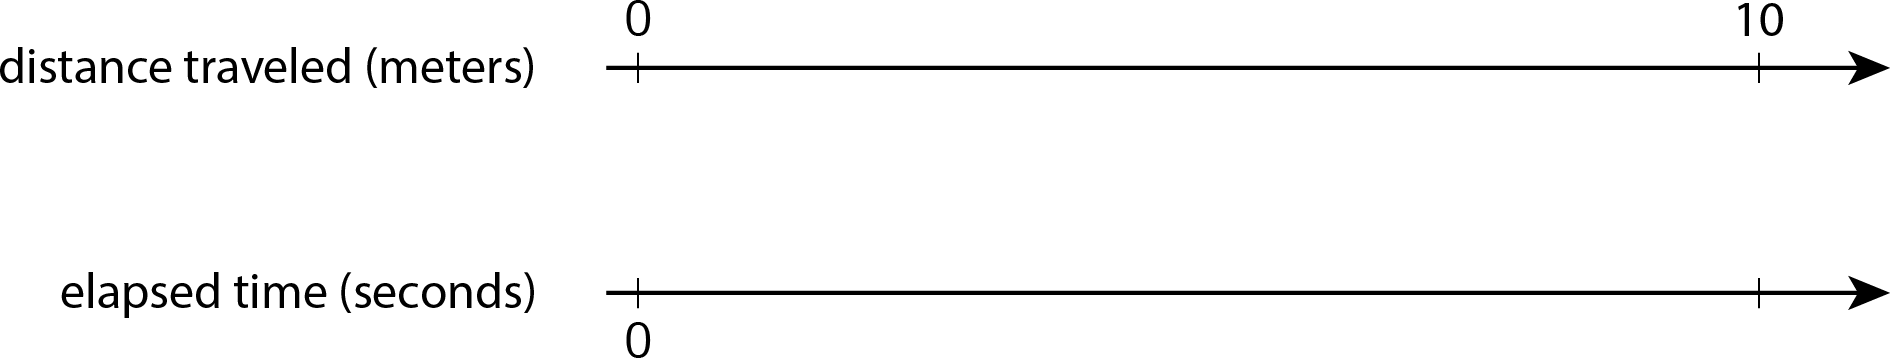 """A double number line with 2 tick marks is titled """"Moving slowly."""" The top number line is labeled """"distance traveled, in meters"""" and the numbers 0 and 10 are indicated. The bottom number line is labeled """"elasped time, in seconds"""". The number 0 is at the first tick mark and the second tick mark is blank."""